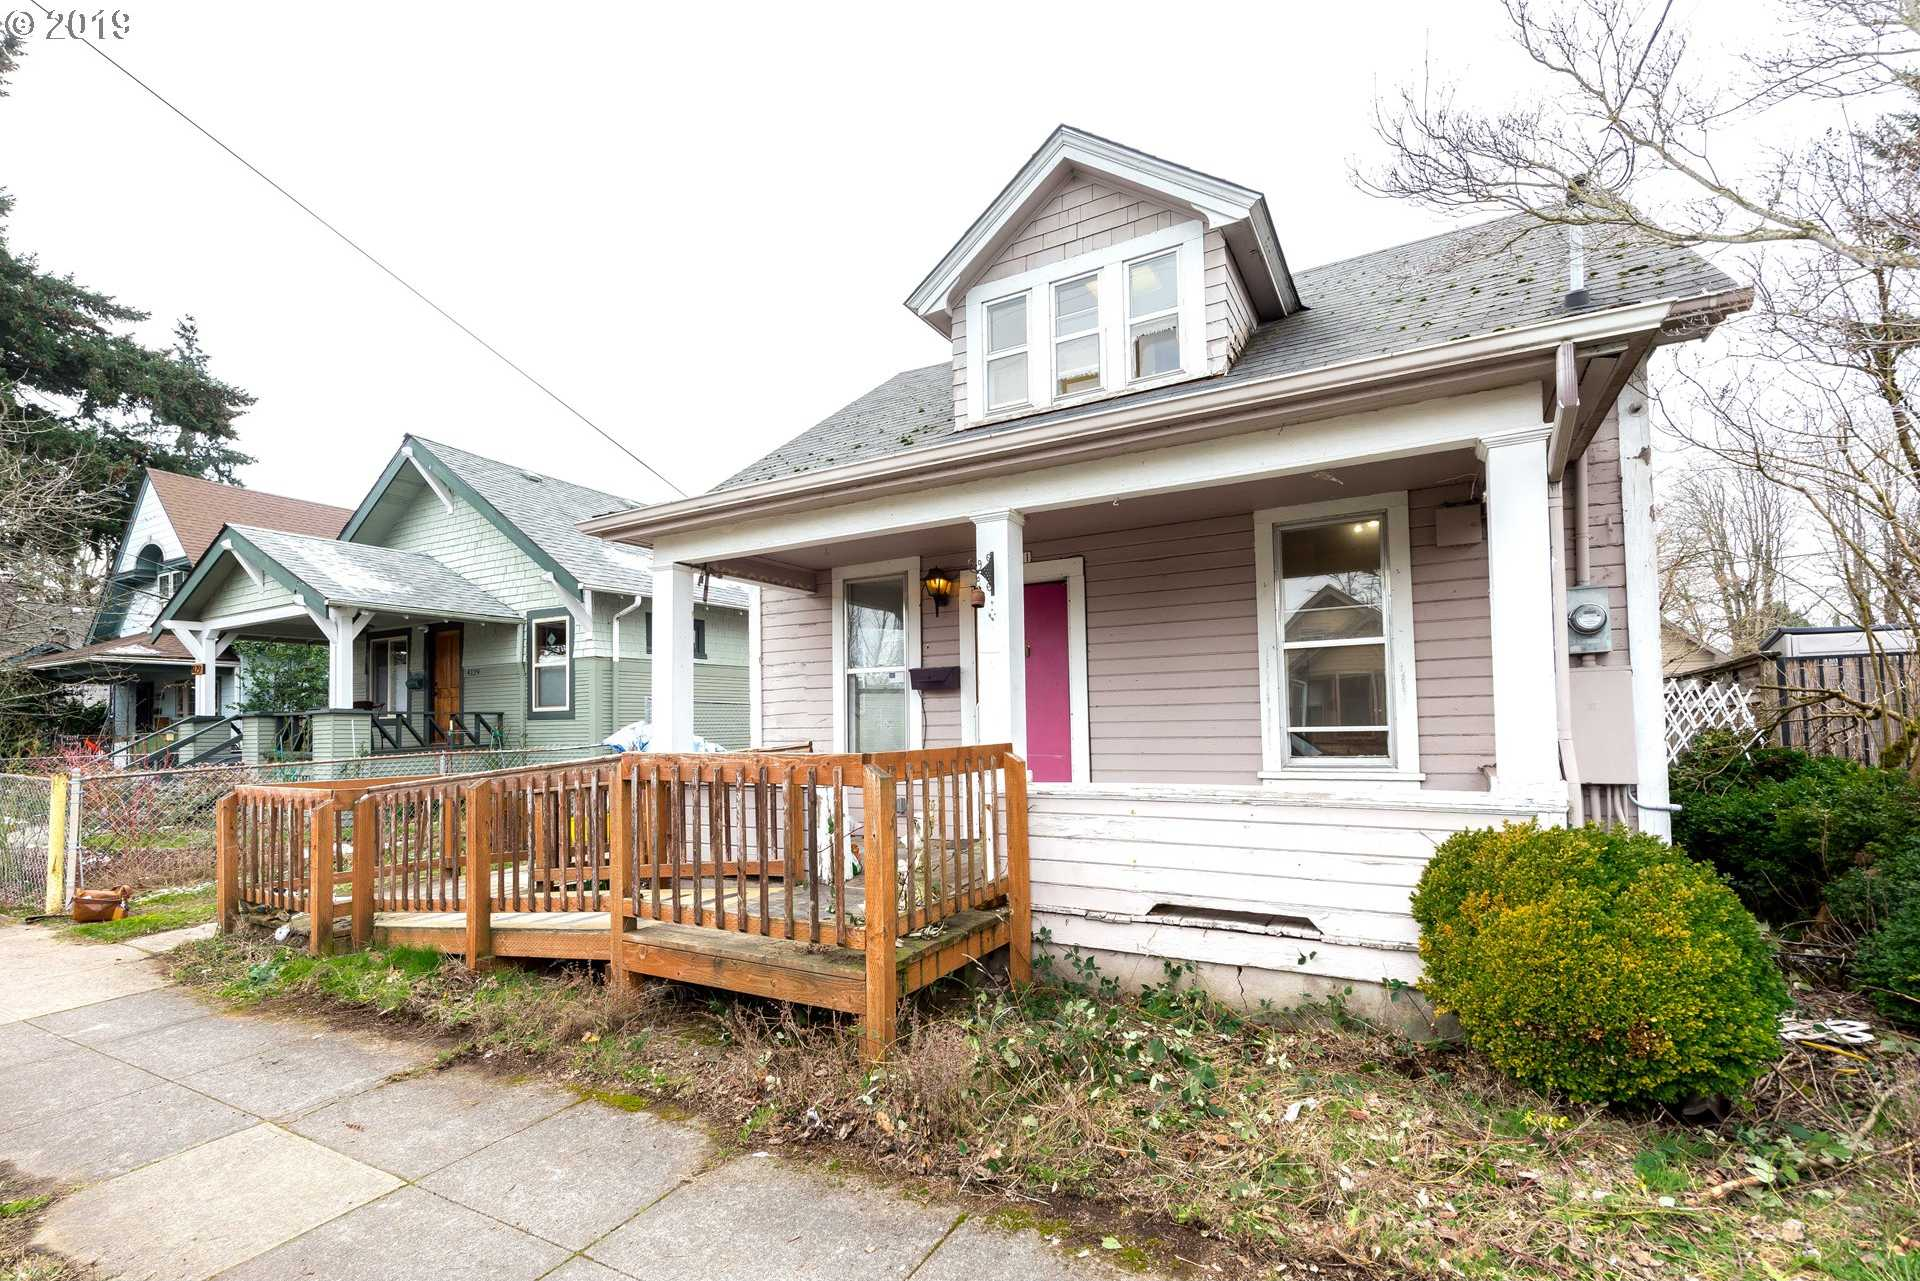 $279,000 - 4Br/1Ba -  for Sale in Foster - Powell, Portland